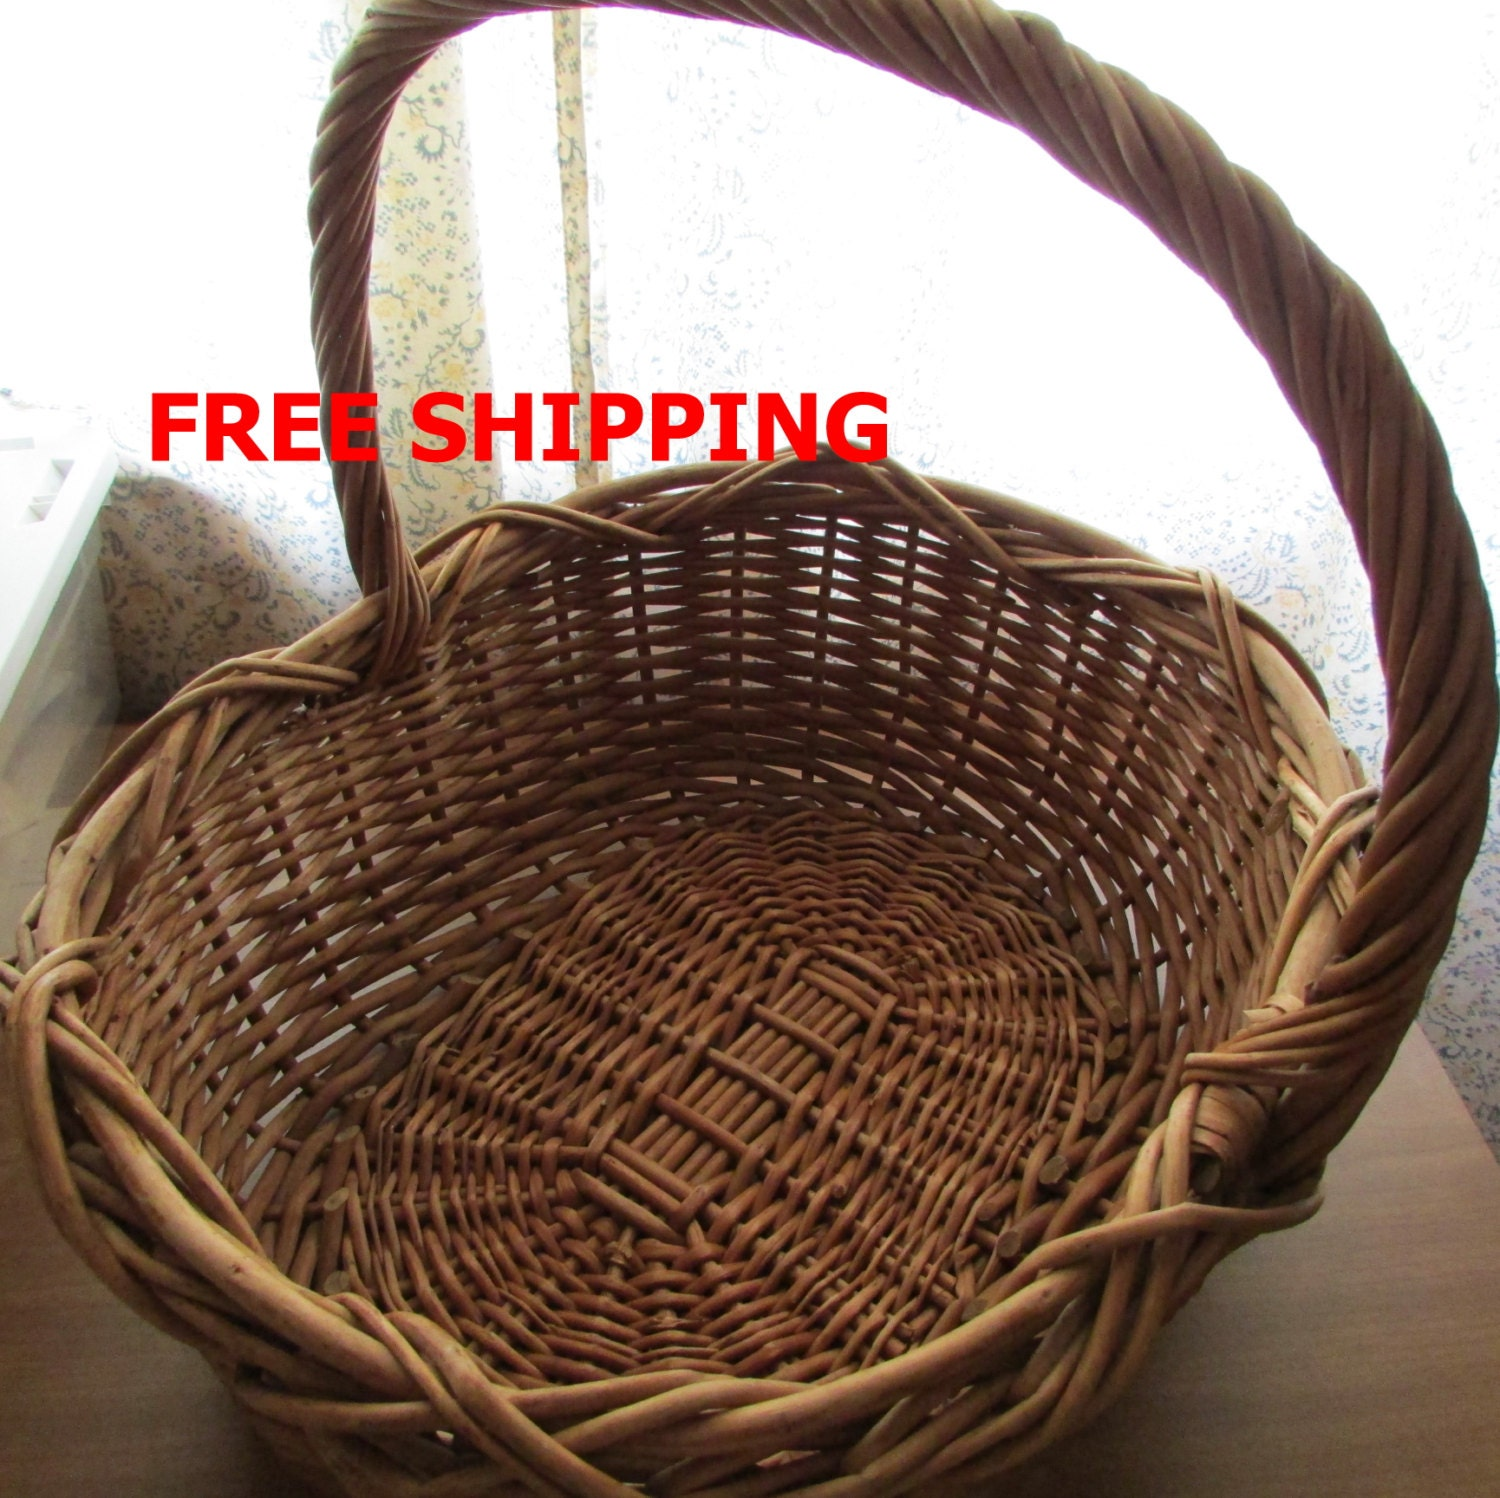 Vintage Basket Extra Large Woven Wicker Reed By Breezyjunction